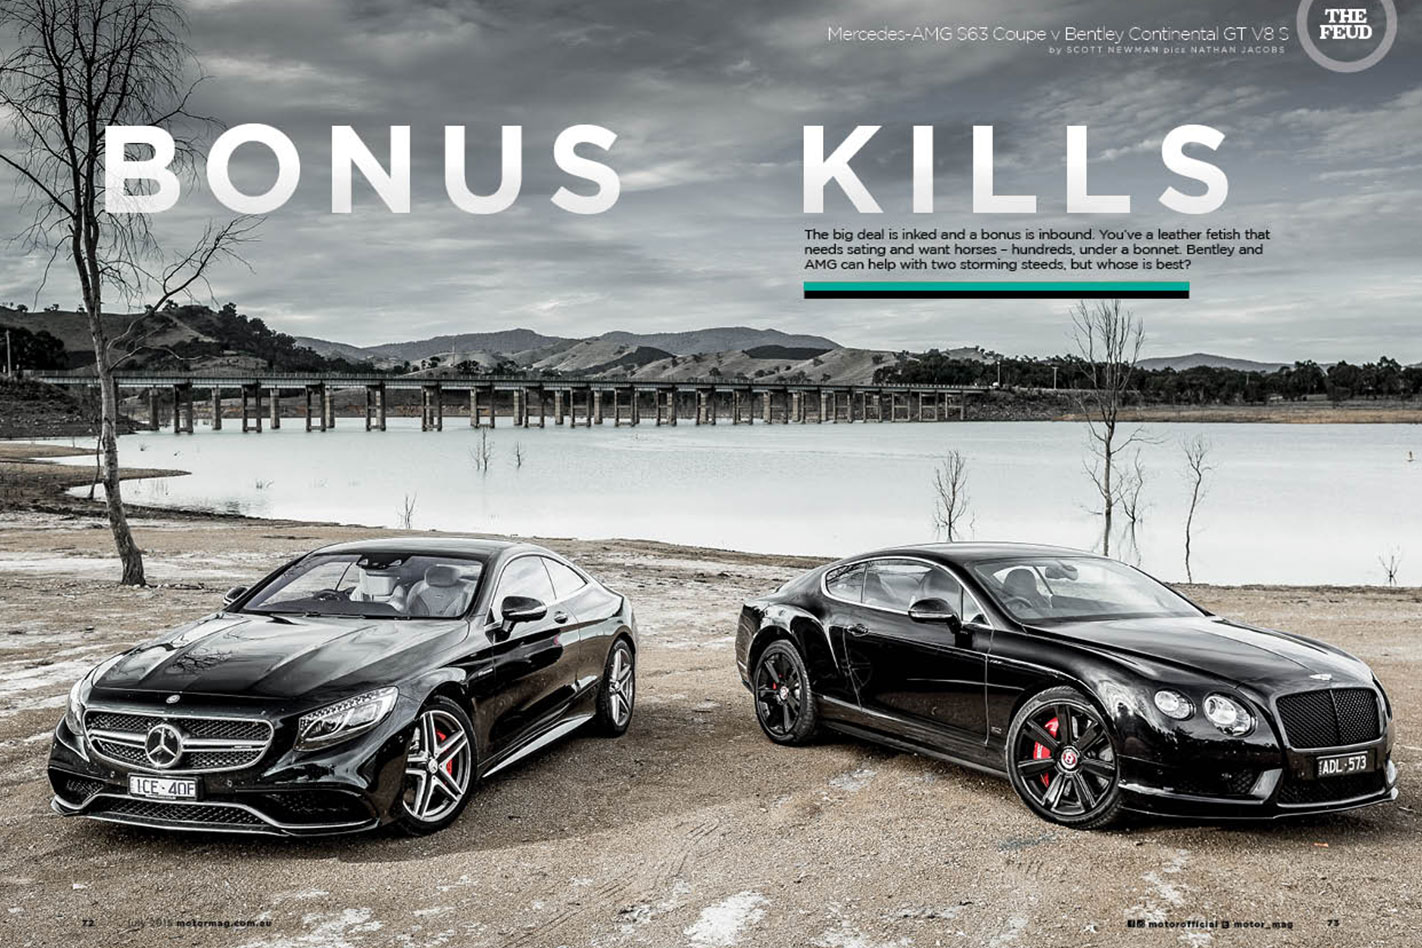 Mercedes-AMG S63 Coupe or Bentley Continental GT V8 S